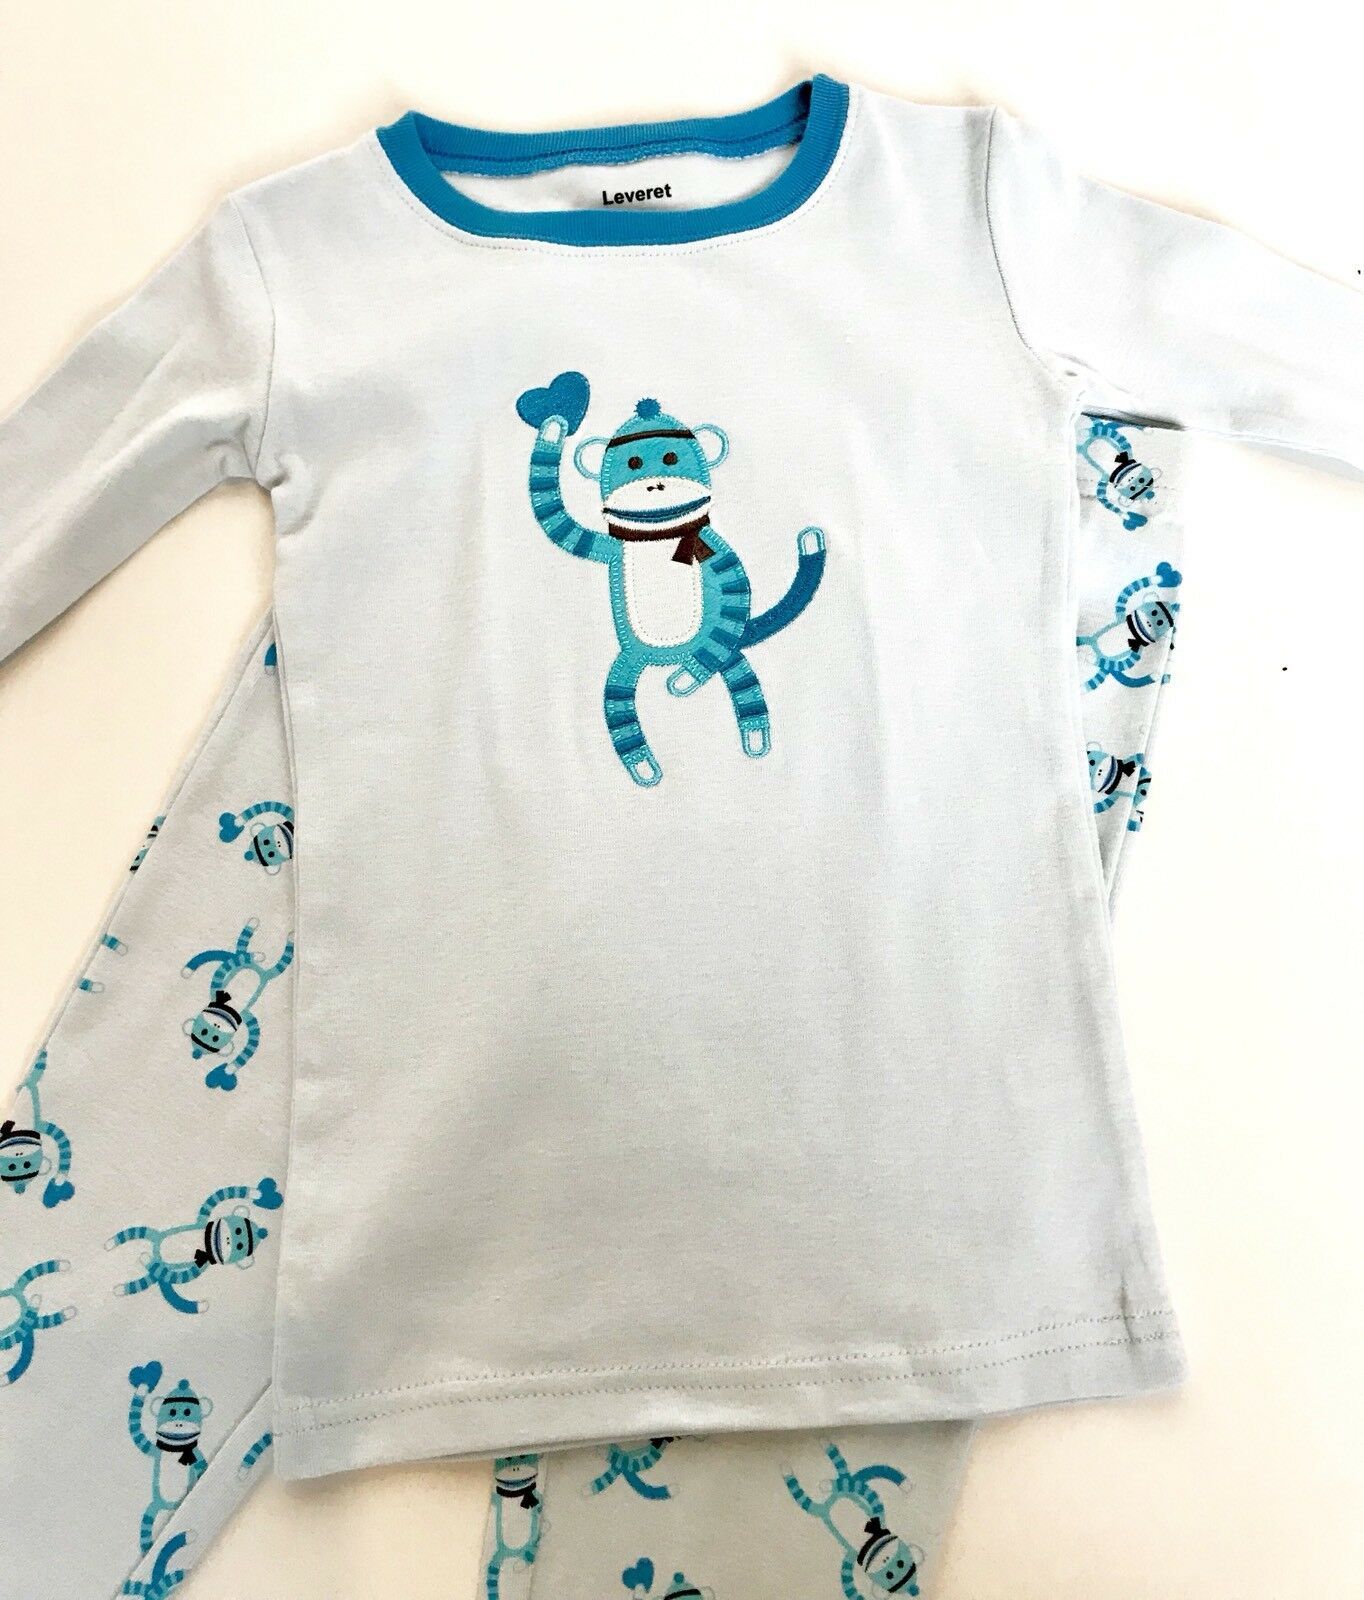 Leveret Appliqué Stitched Blue Monkey PJ's Age 4 Price $18 NWT